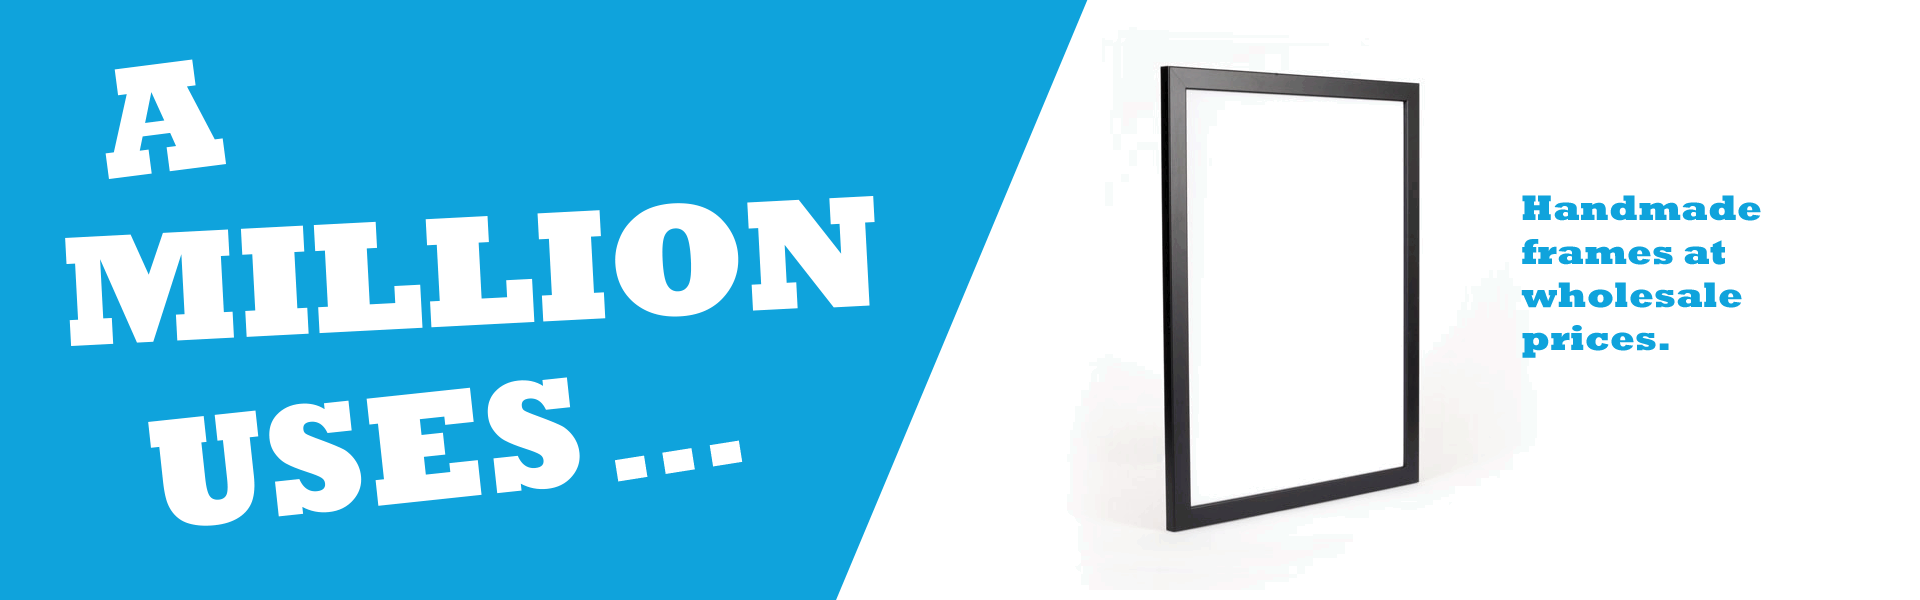 Shortrunposters.com has the best prices on handmade frames.